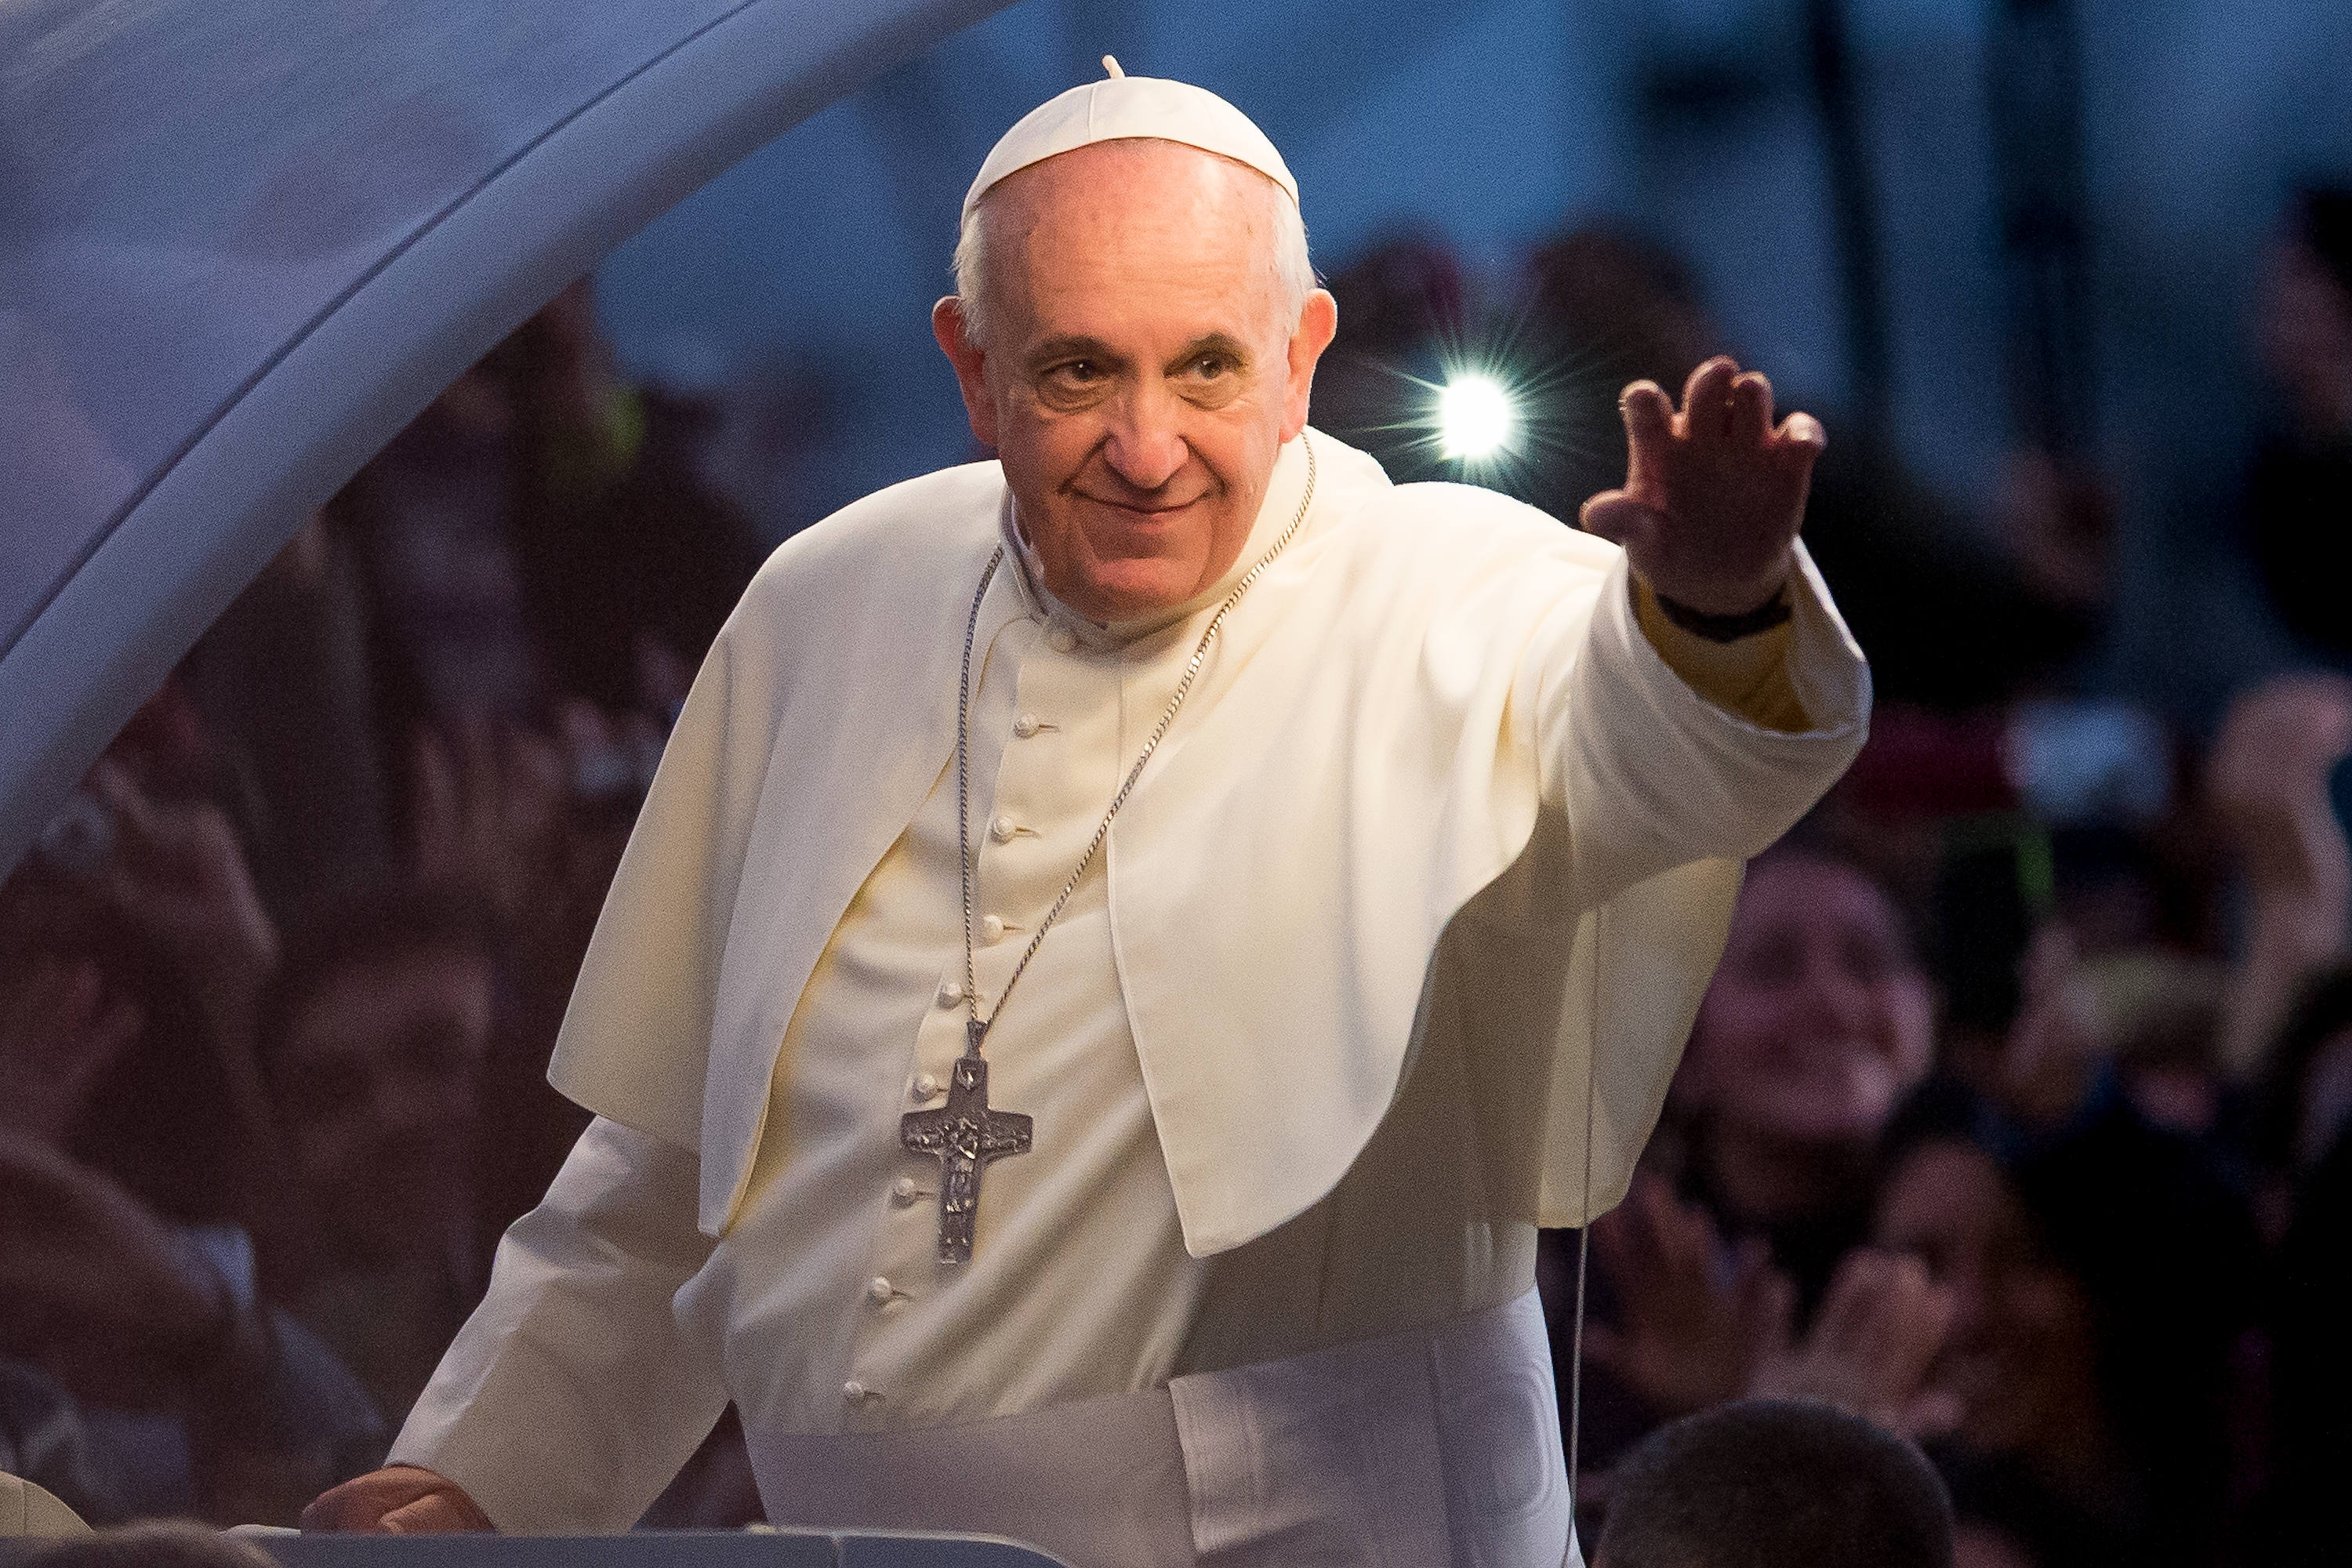 The Pope's Instagram account liked a Brazilian model's racy photo